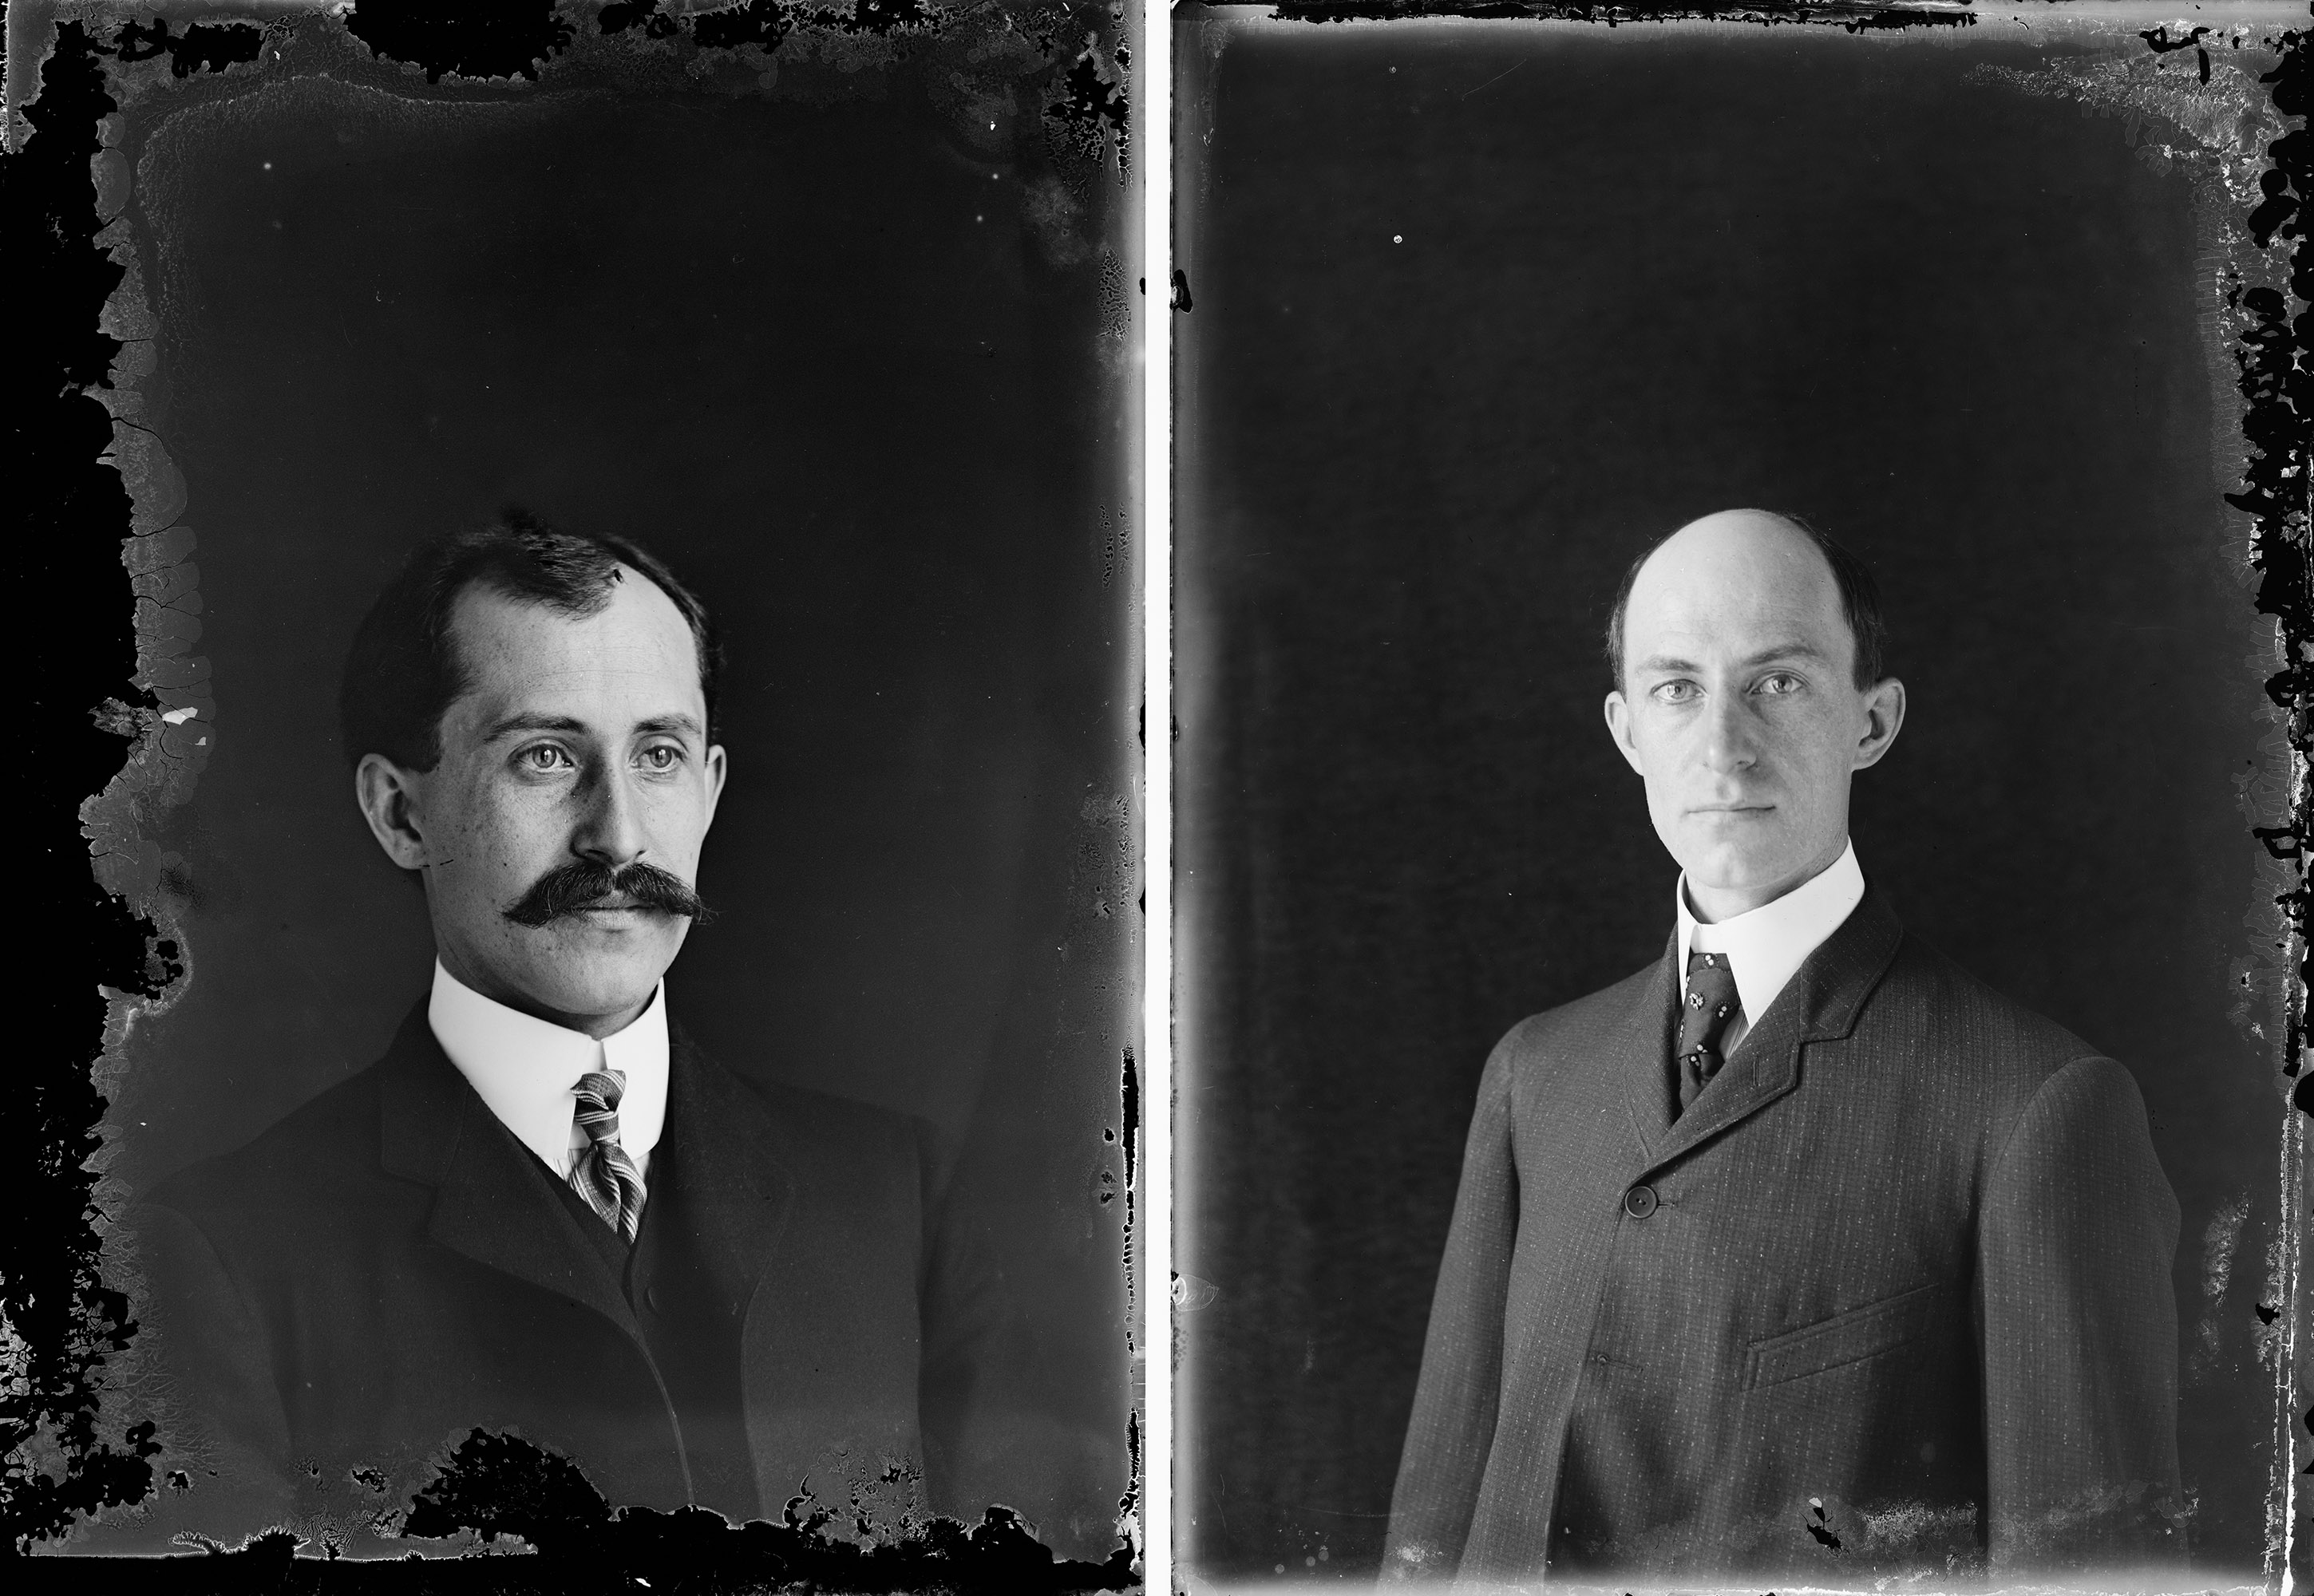 Dry plate, glass negatives from 1905 of Orville Wright at age 34 and Wilbur Wright at 38.